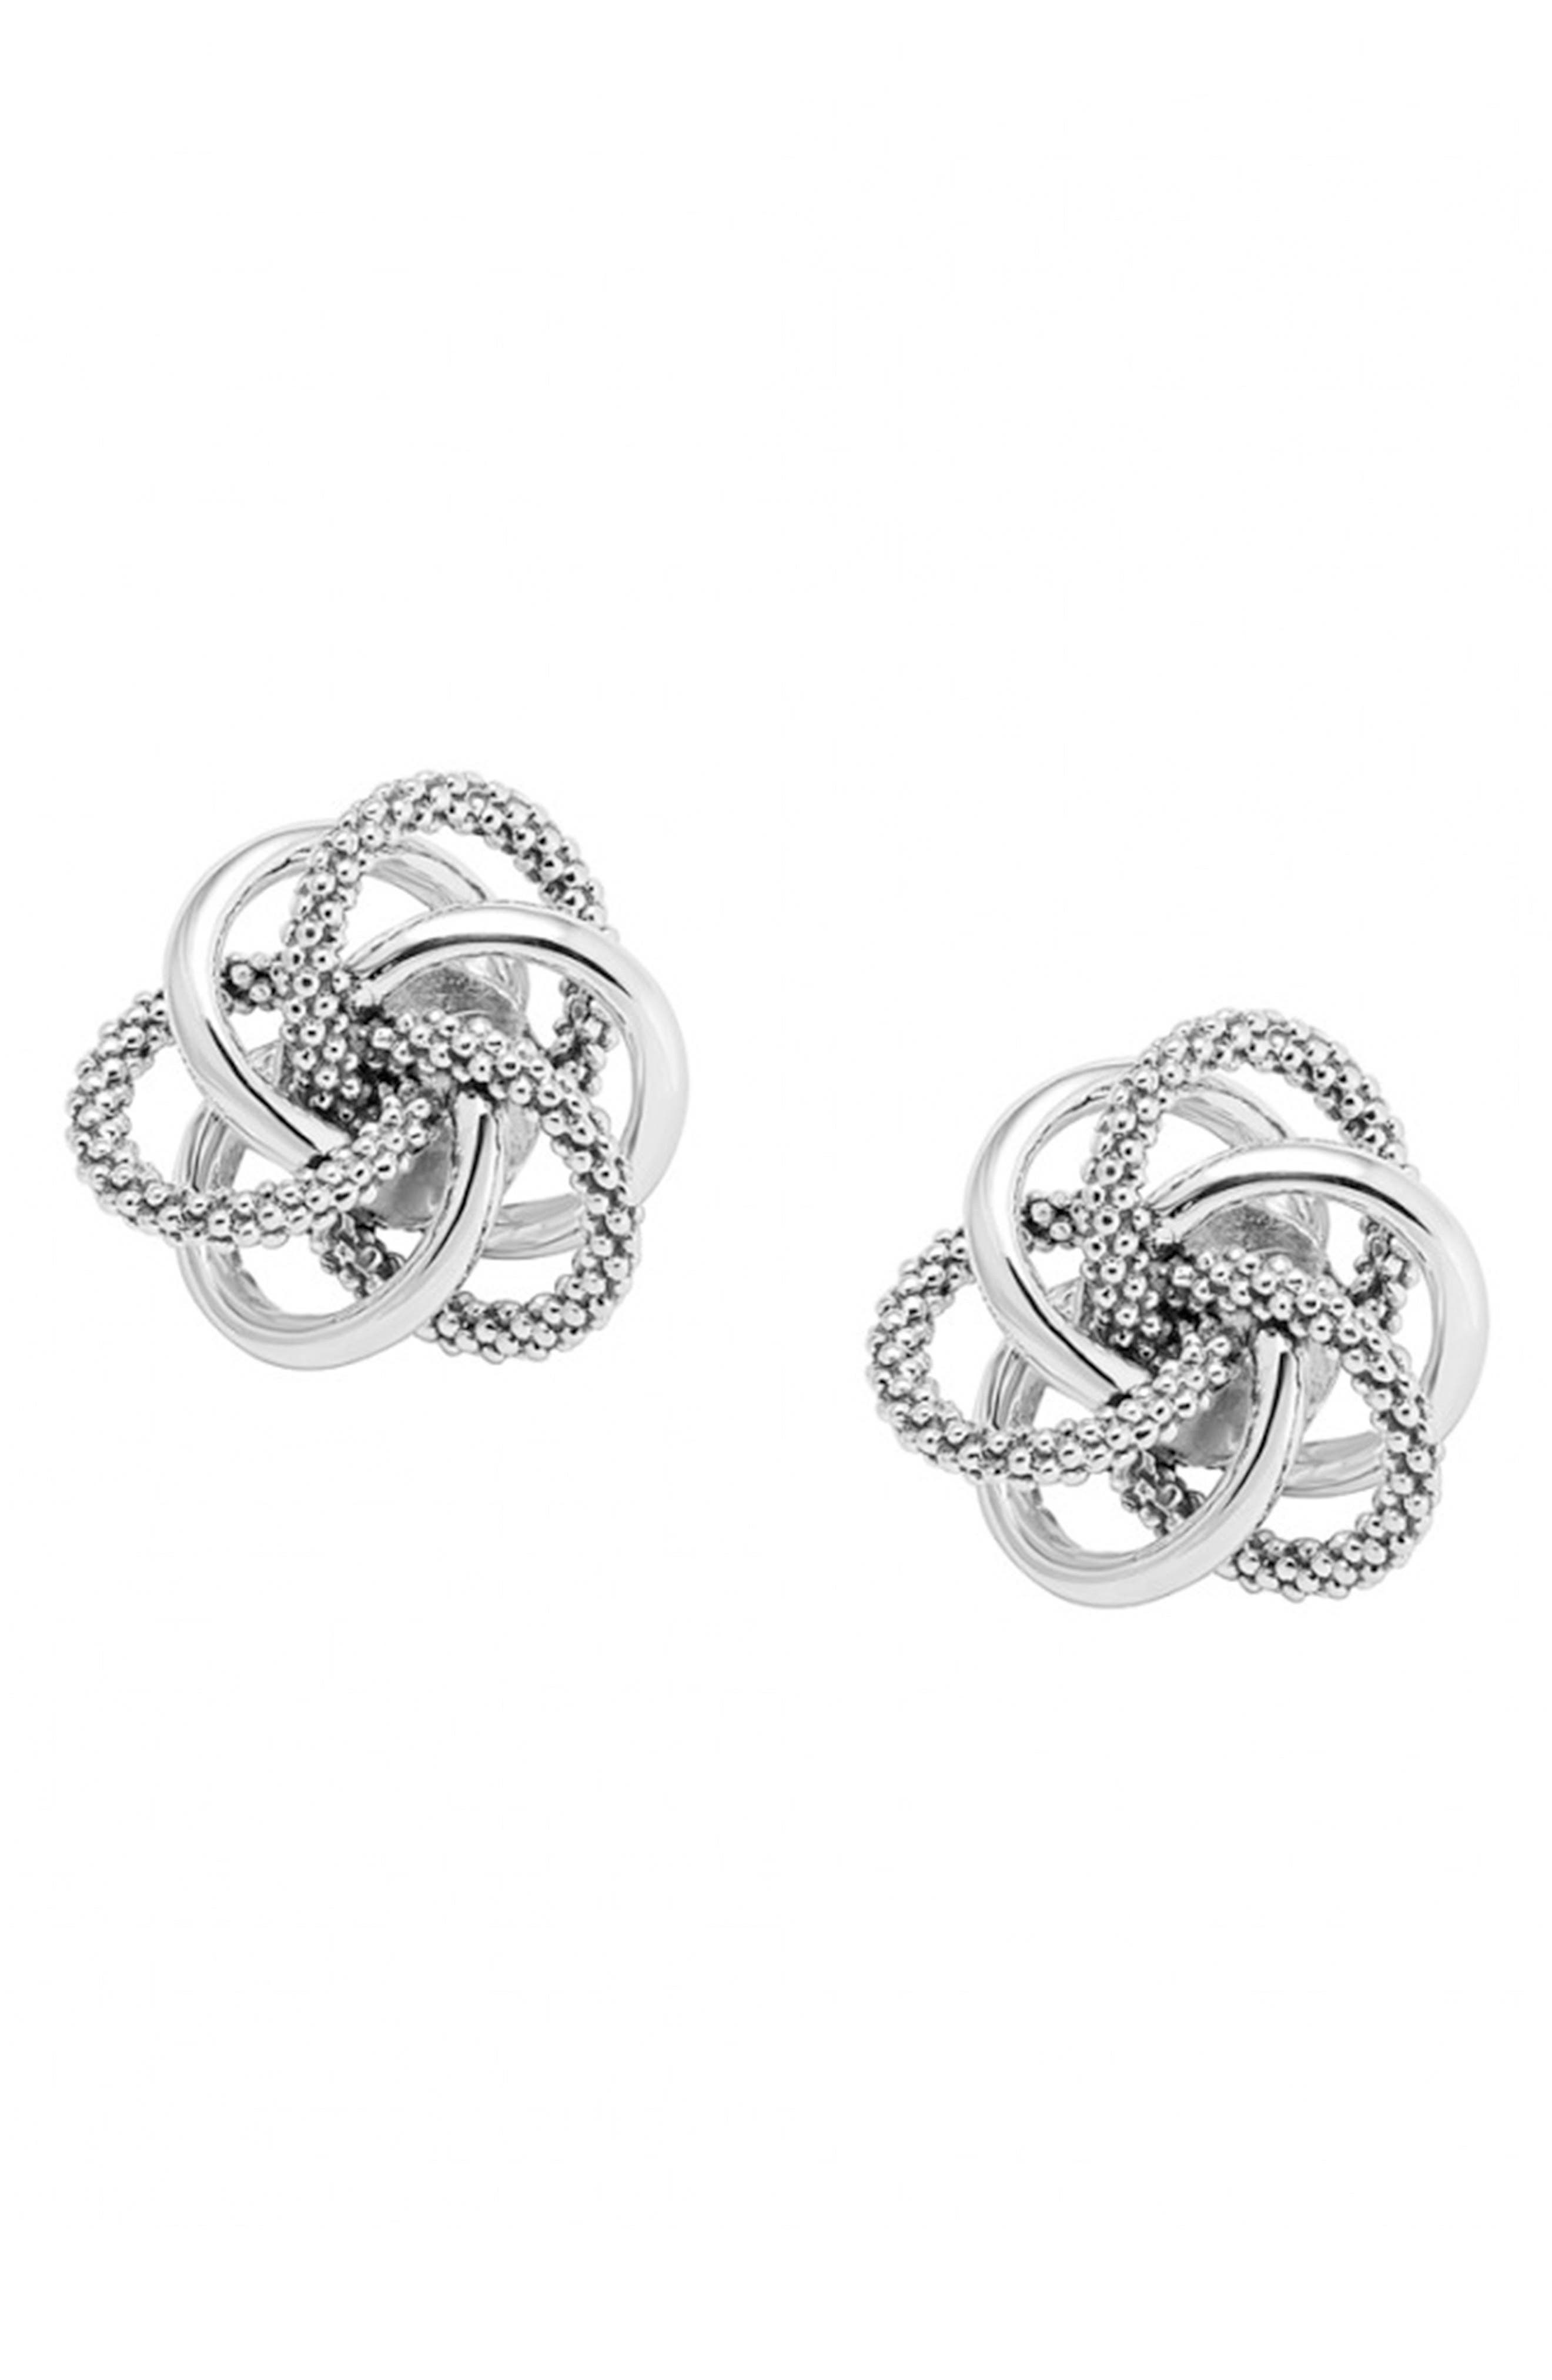 Caviar<sup>™</sup> Stud Earrings,                             Main thumbnail 1, color,                             STERLING SILVER